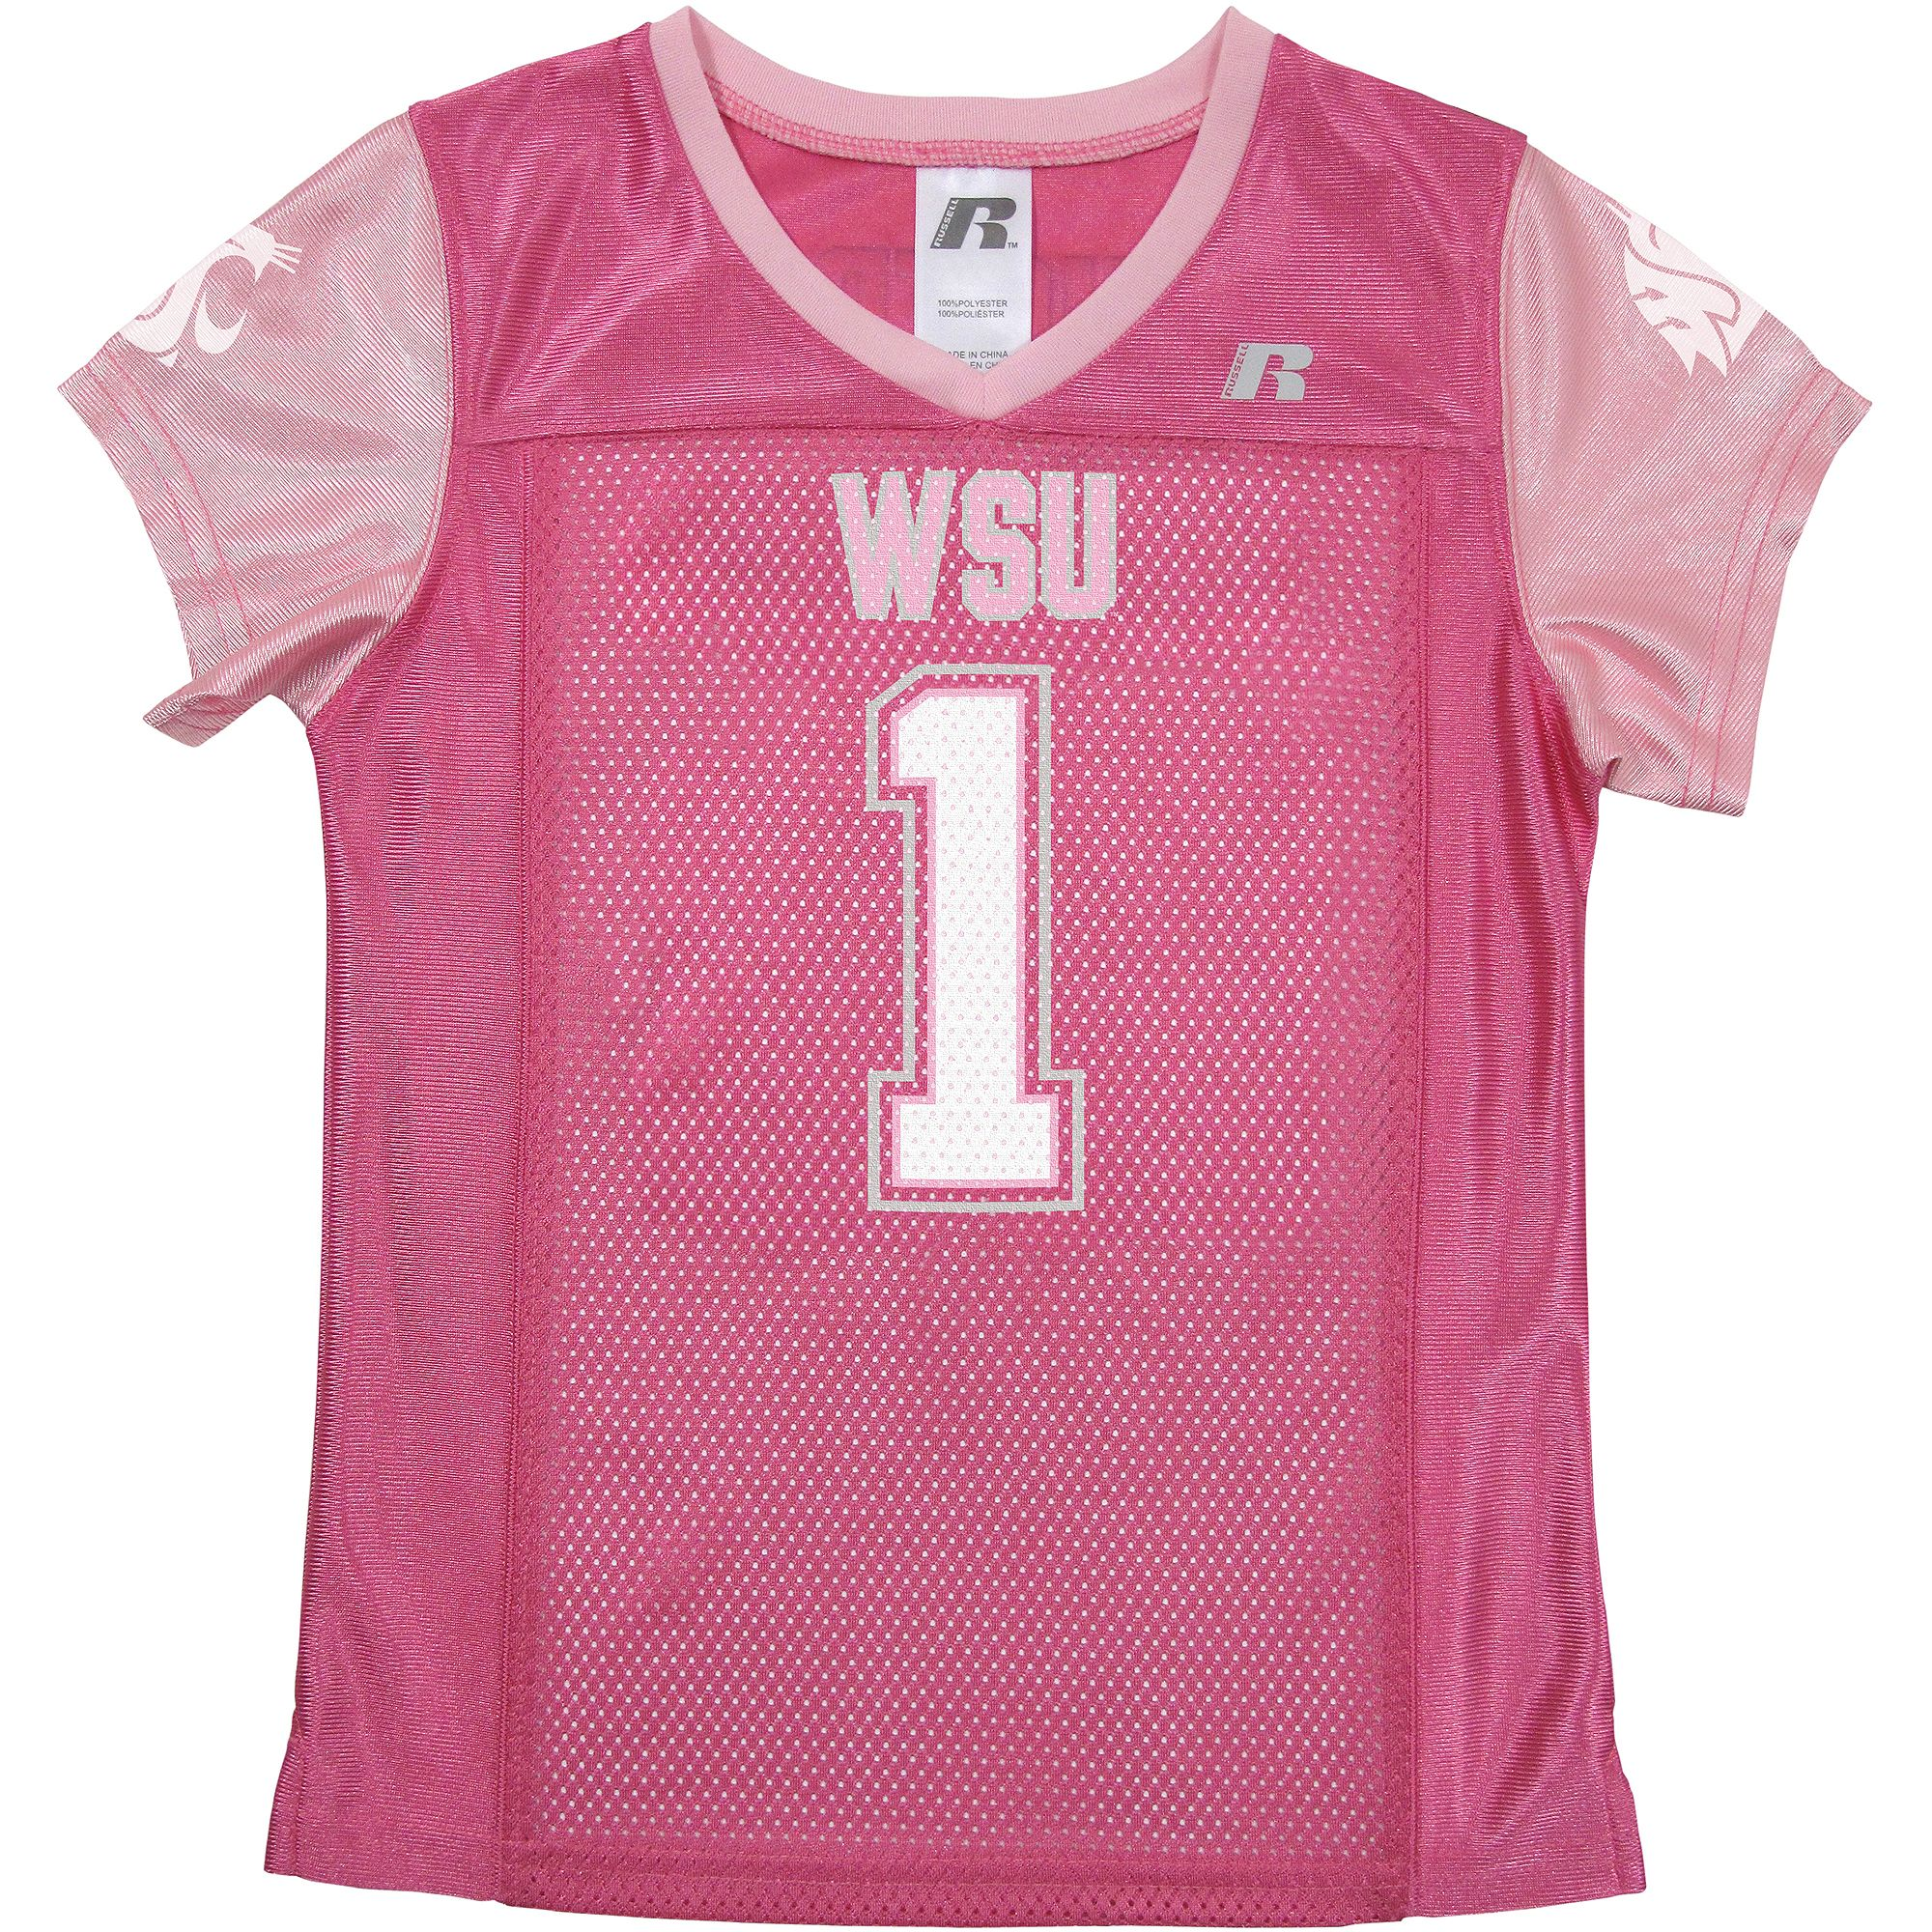 Russell NCAA Washington State Cougars, Girls Short Sleeve V-Neck Replica Jersey